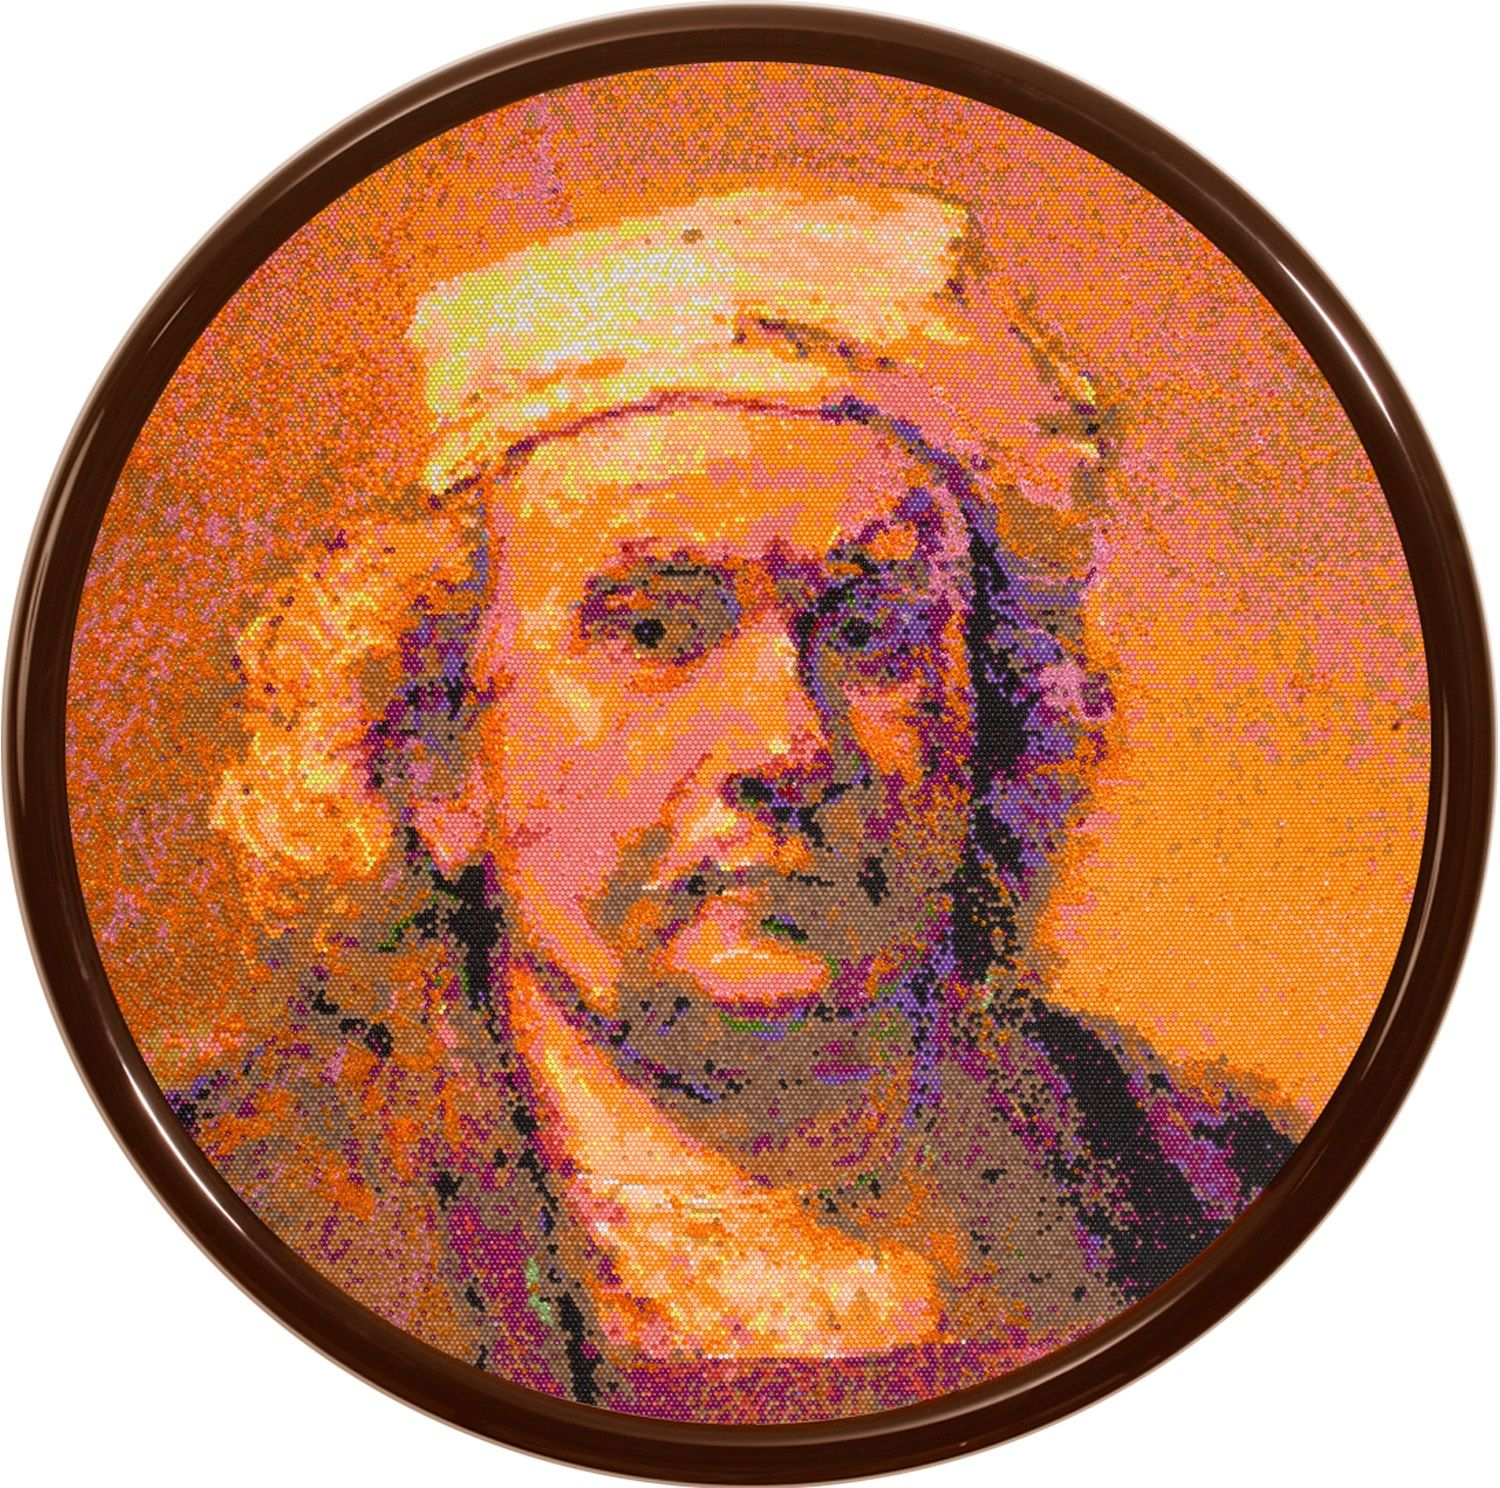 David Mach S Rembrandt Made From Thousands Of Coloured